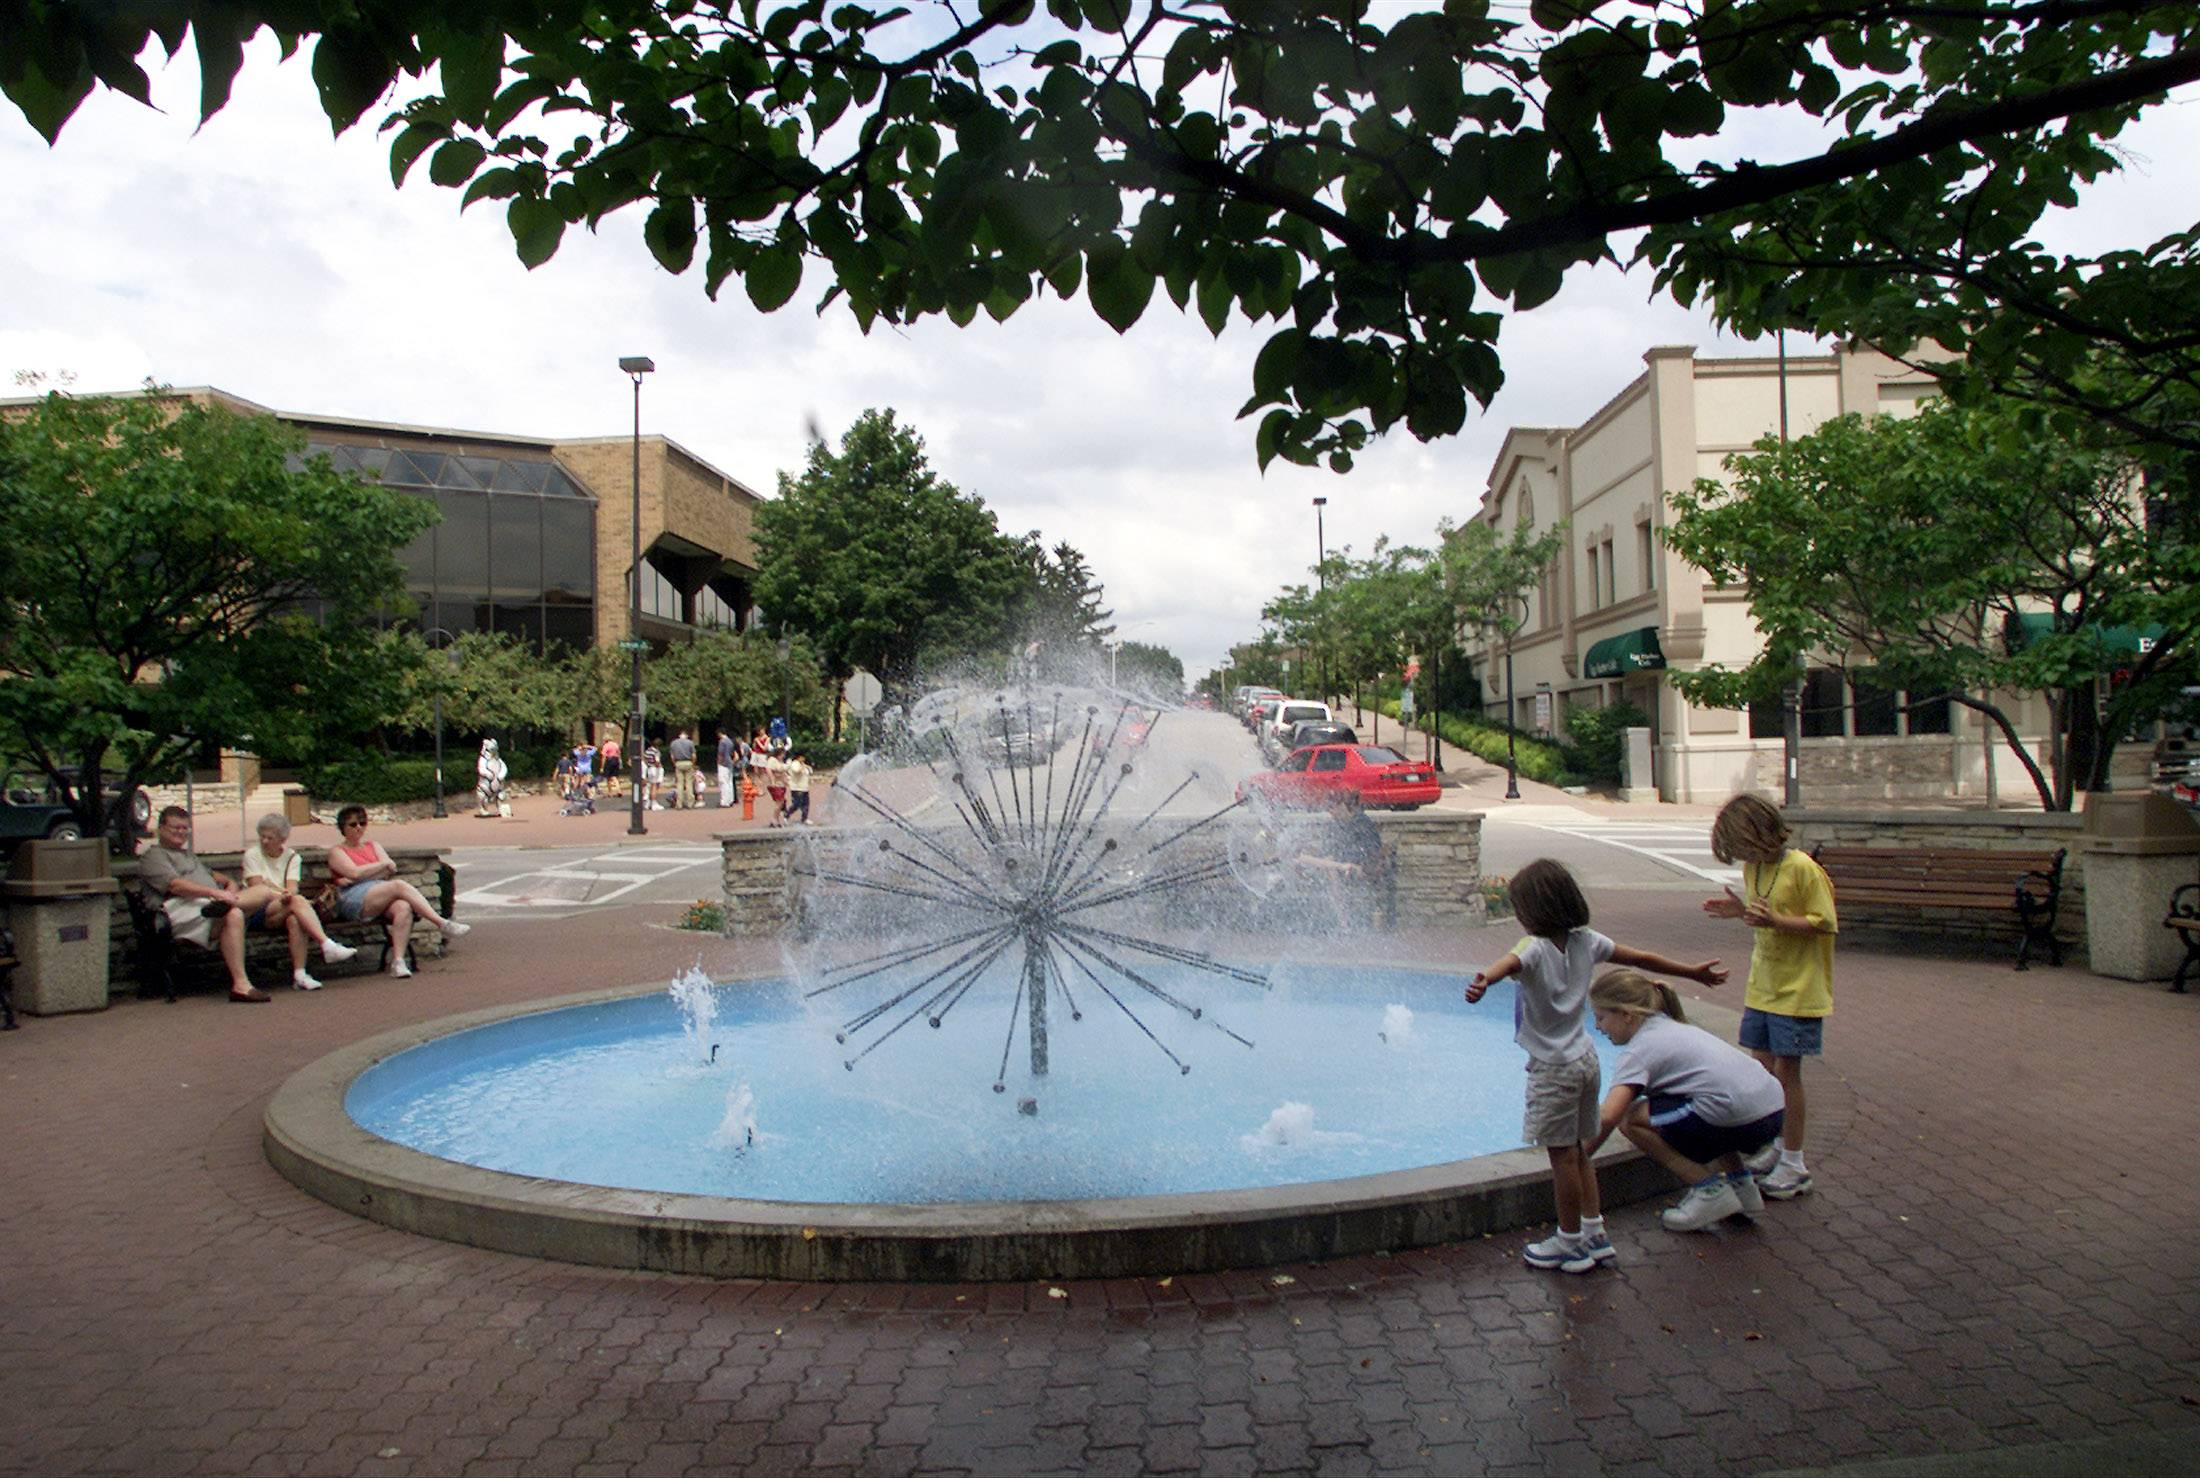 Naperville has a dandelion fountain on its Riverwalk. Does that make the town snobby?